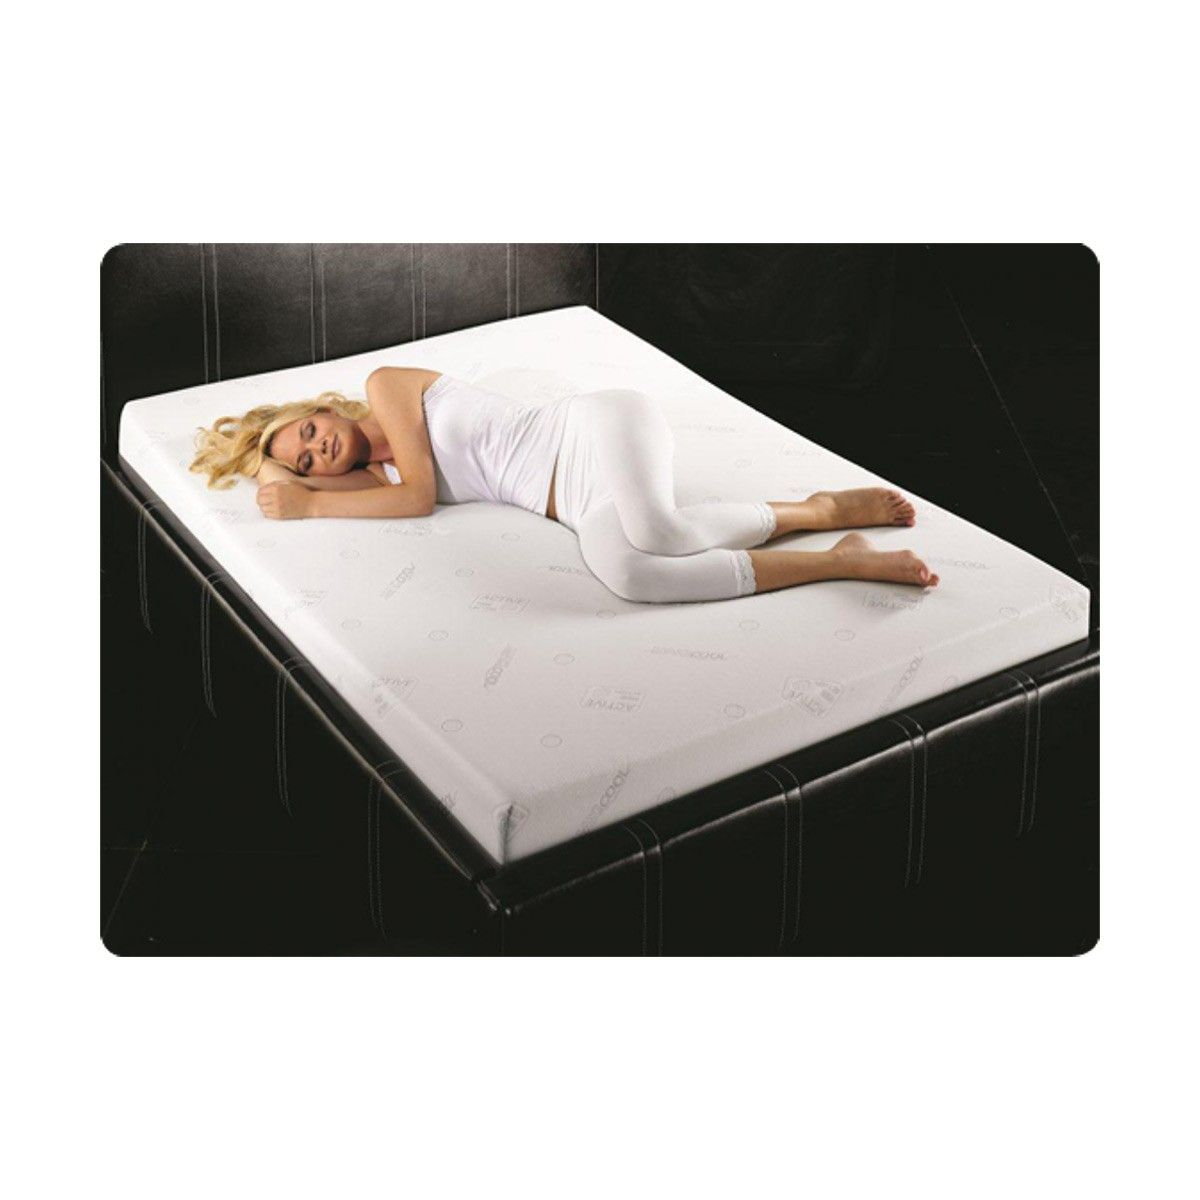 CM Mattress With Maxicool Cover King from The Original Factory